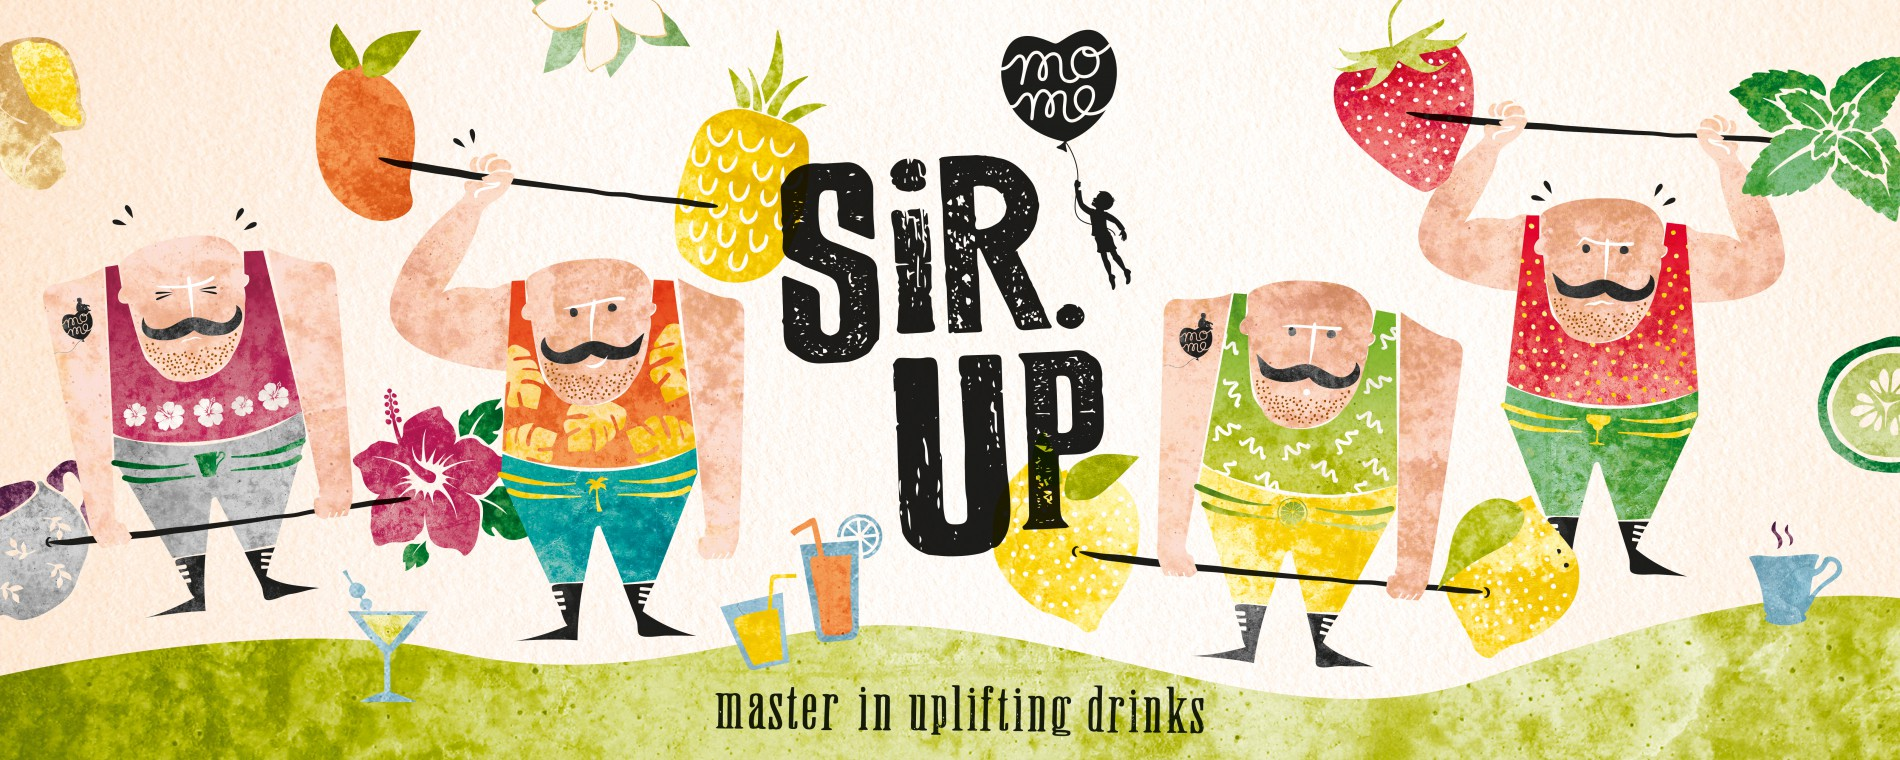 Quatre Mains package design - Package design sirup, cordials, weightlifter, quatre mains, packaging